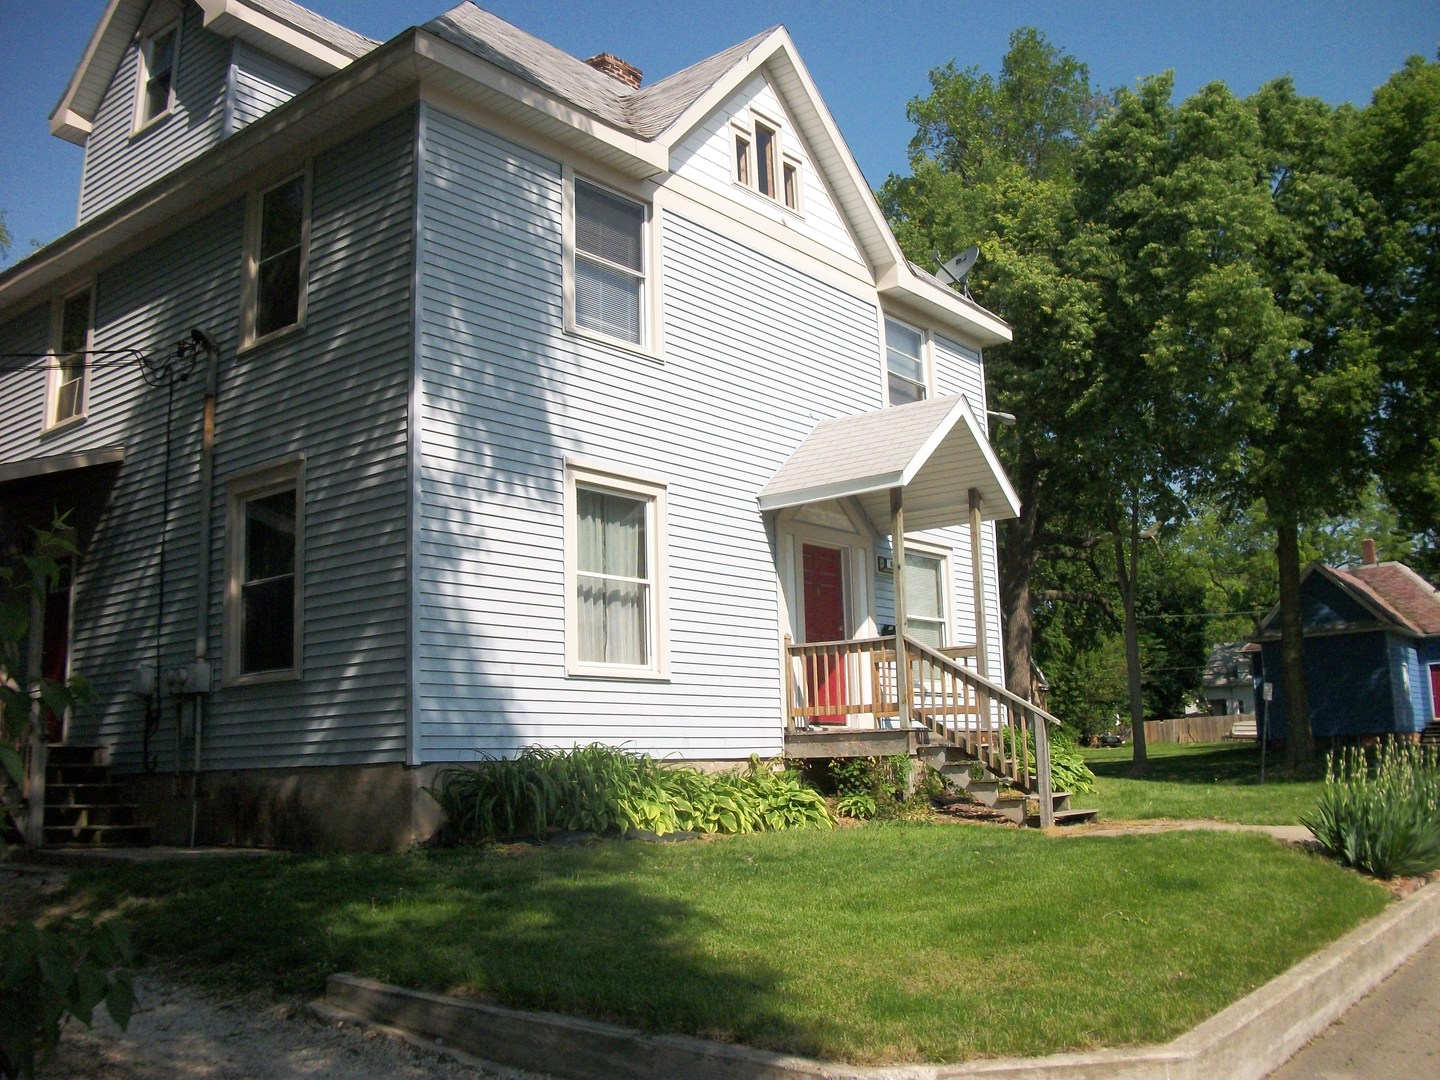 907 North State Street, Champaign in Champaign County, IL 61820 Home for Sale